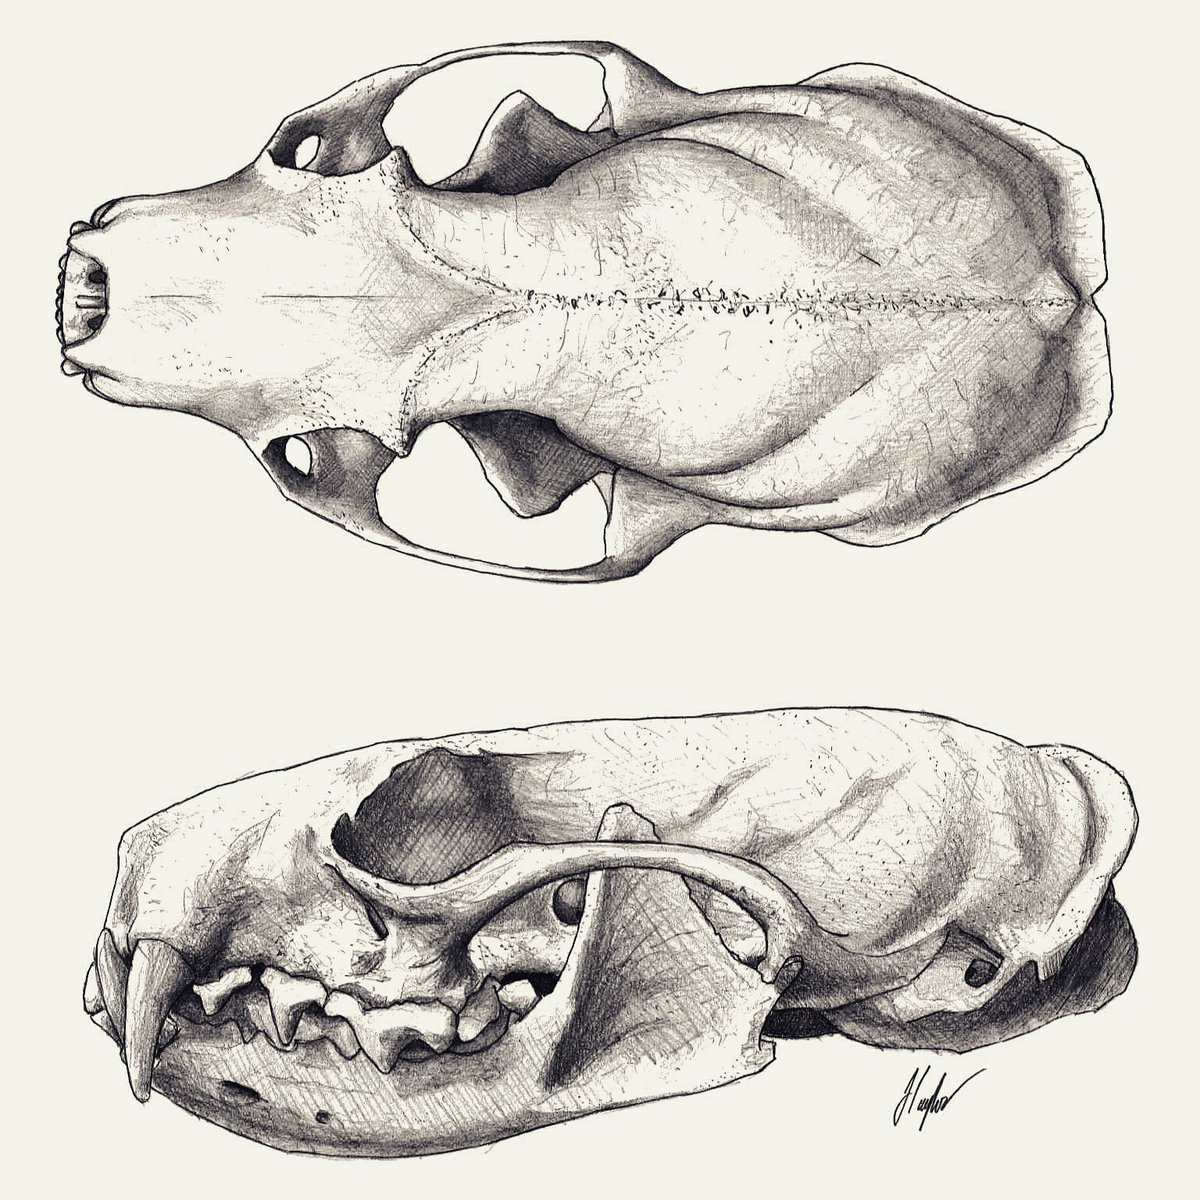 hight resolution of jed taylor on twitter the skull is an american mink these mustelids have impressively robust jaws and large teeth thanks to everyone that guessed